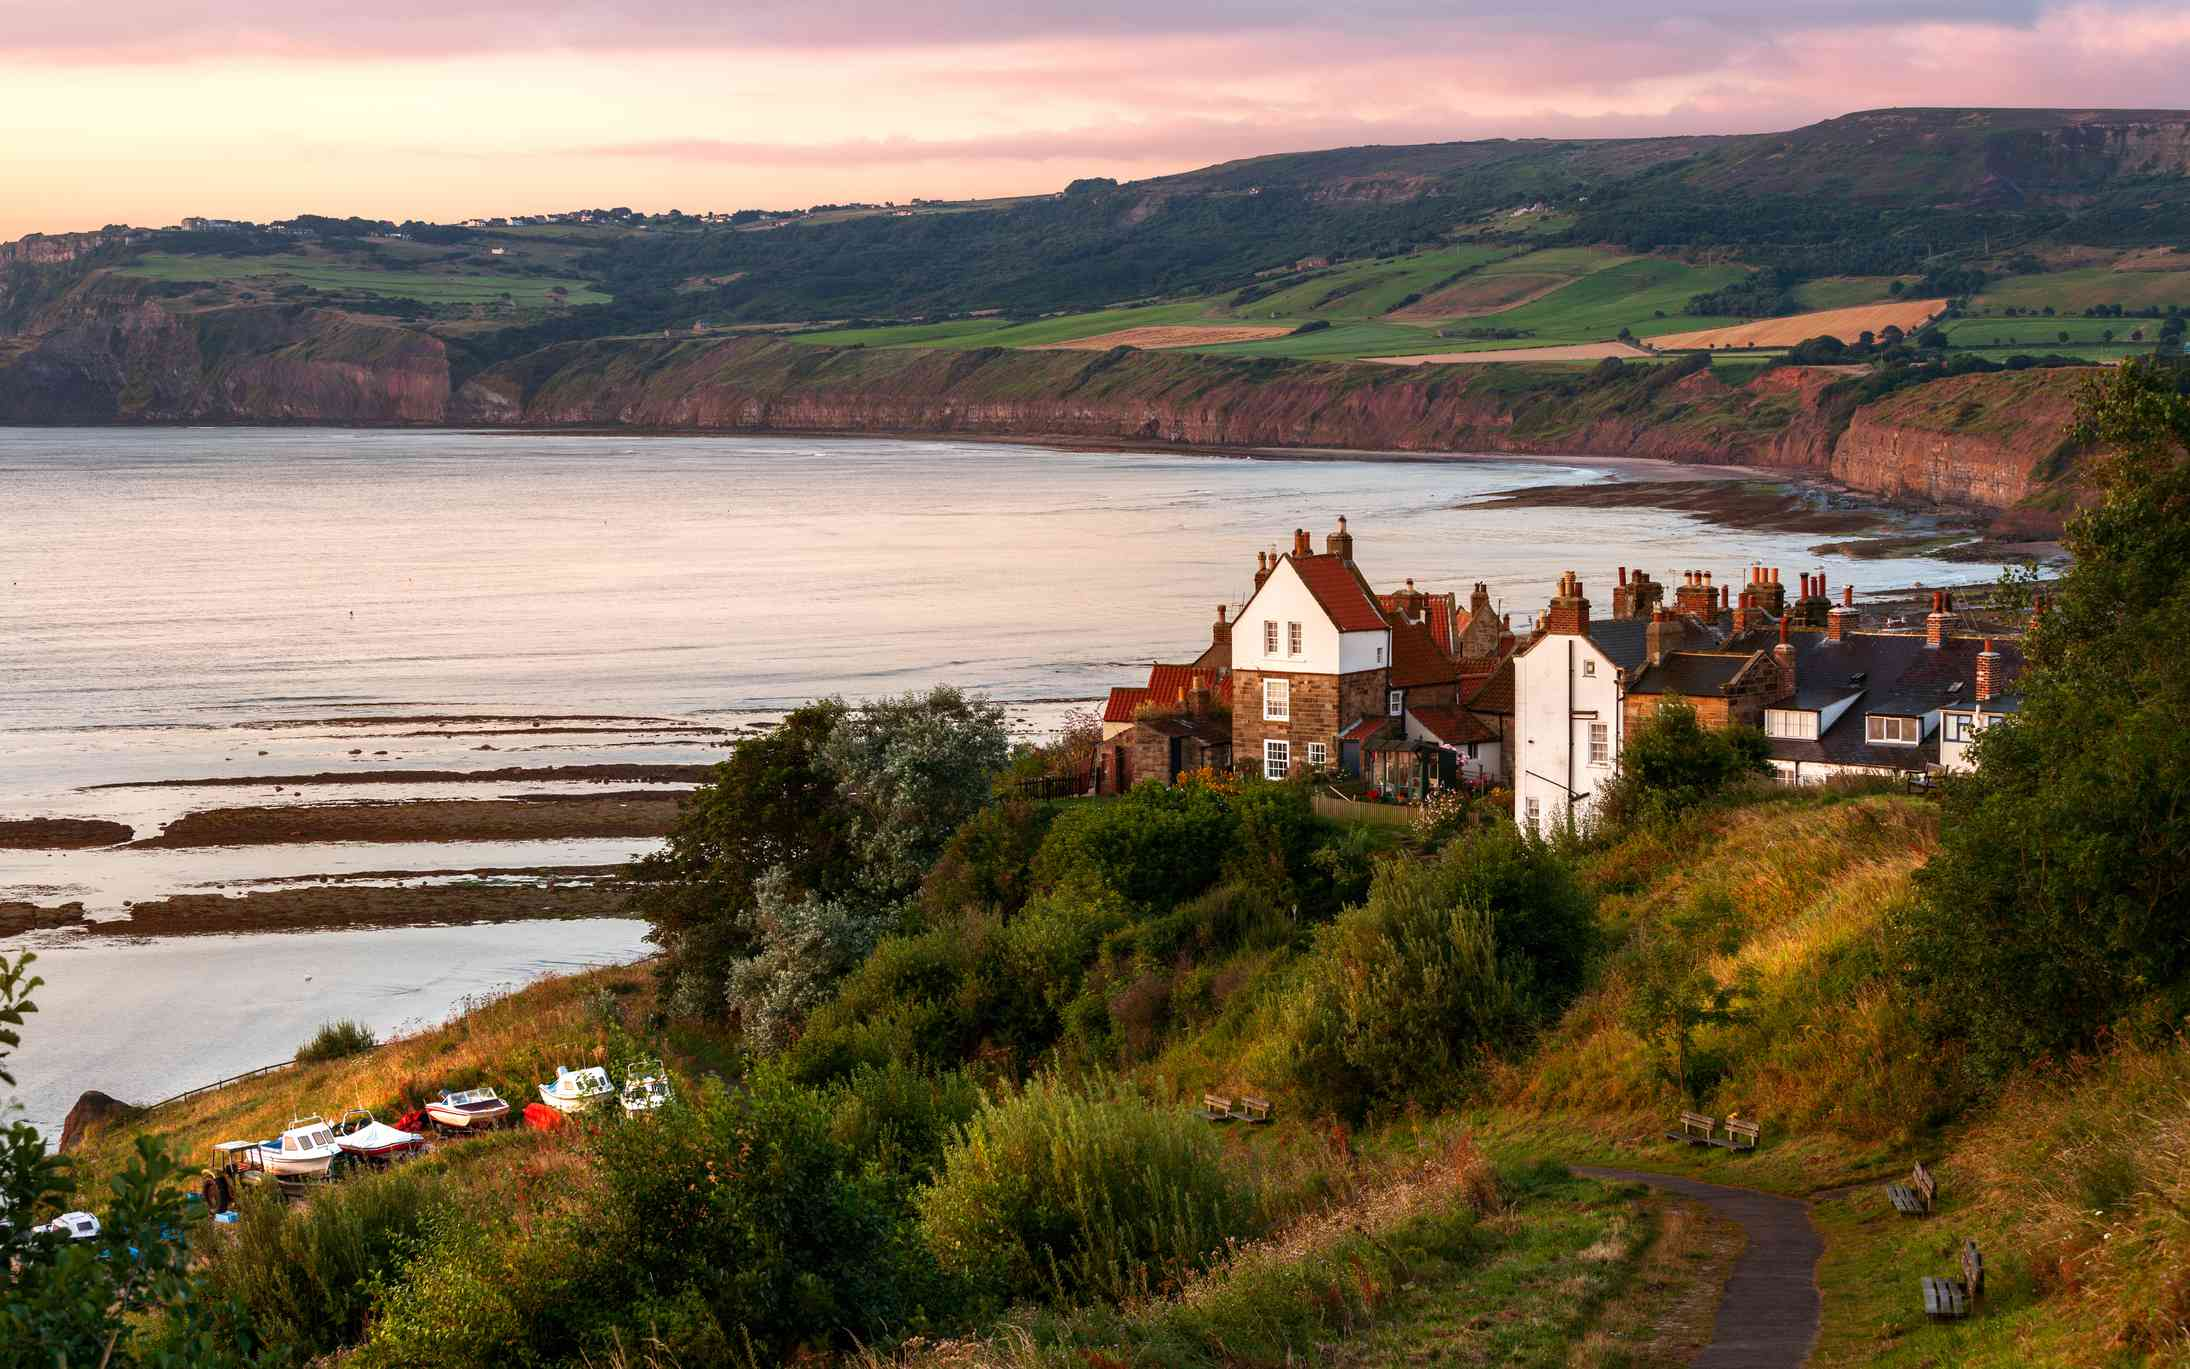 A narrow pathway leads down to a coastal town in Yorkshire